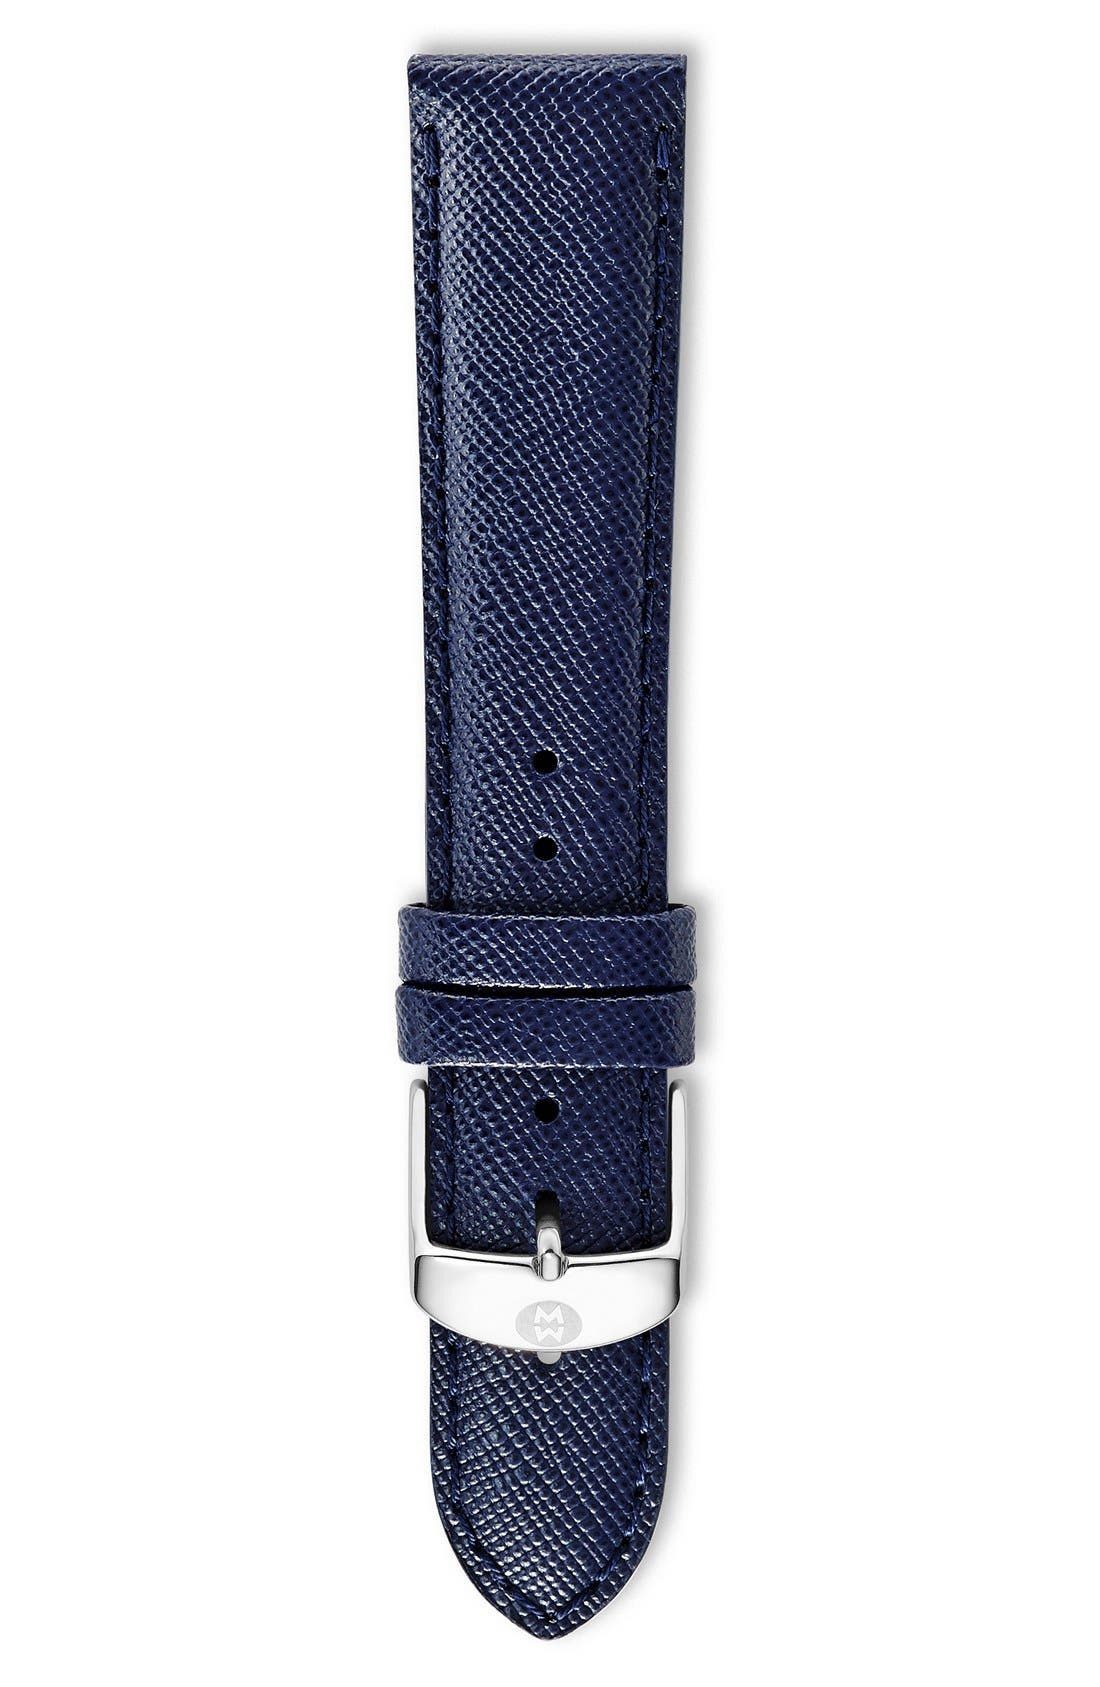 18mm Saffiano Leather Watch Strap,                             Main thumbnail 4, color,